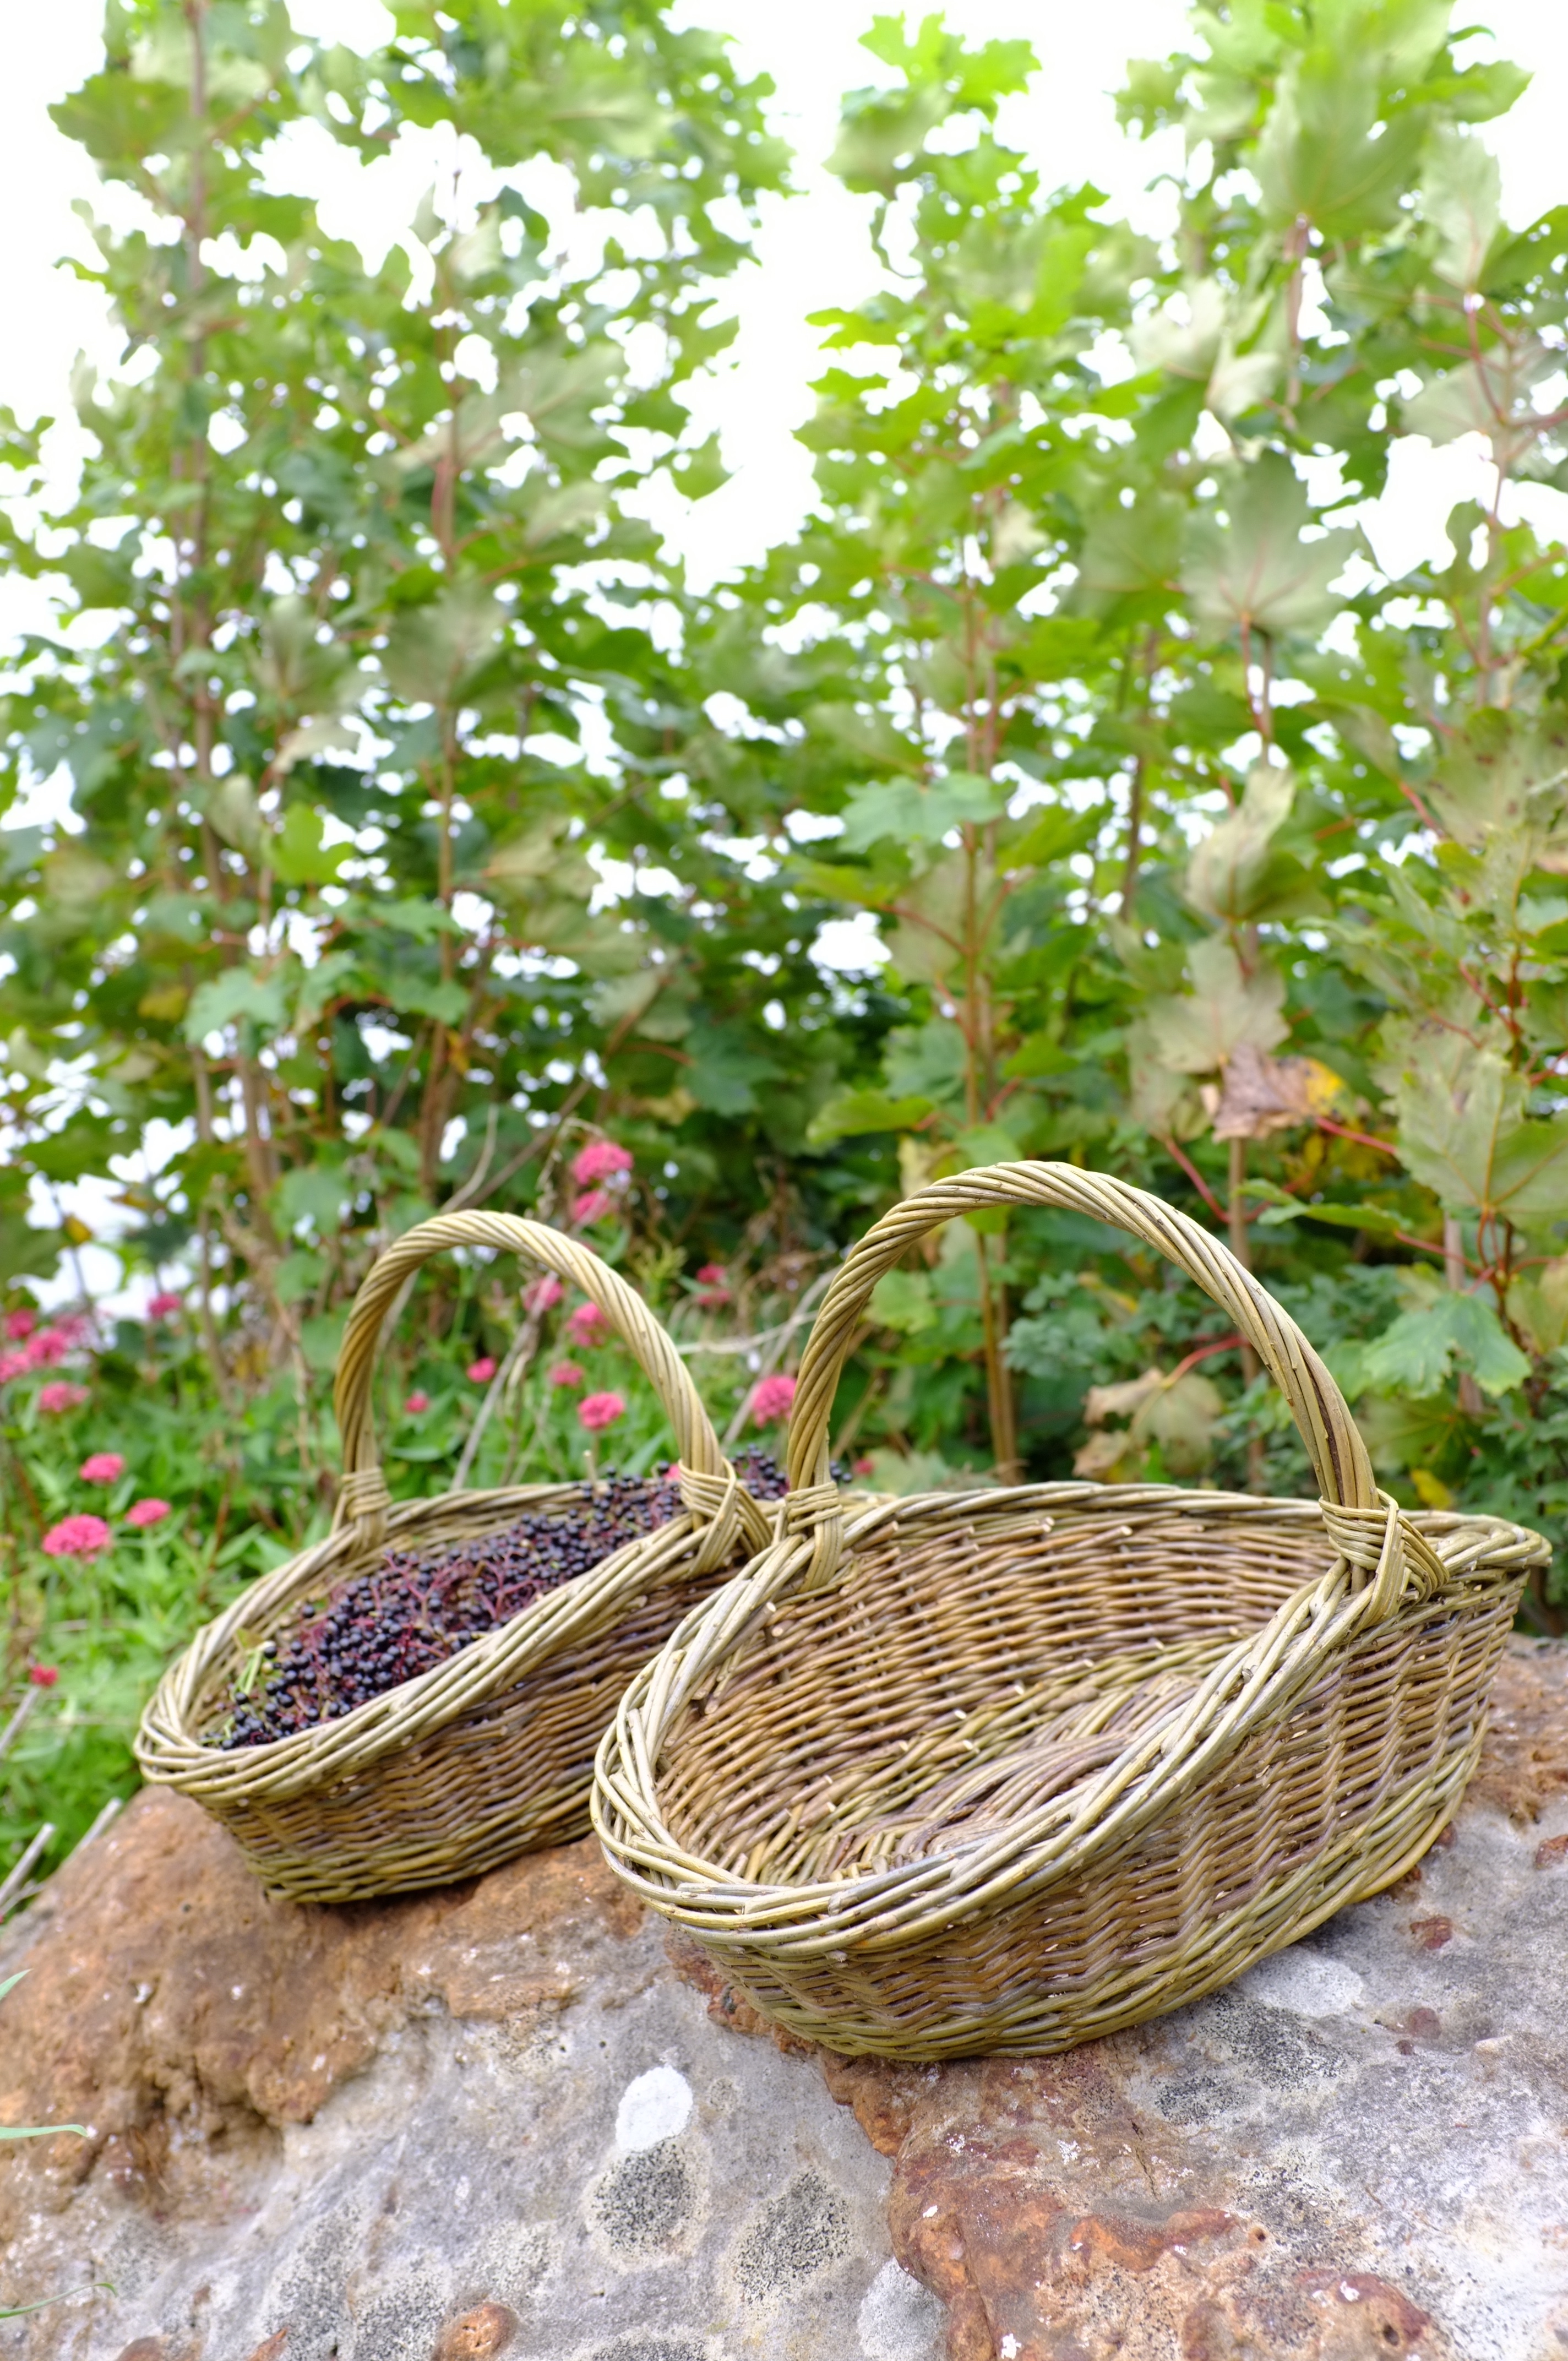 Harvest Baskets using Organically Grown Willows